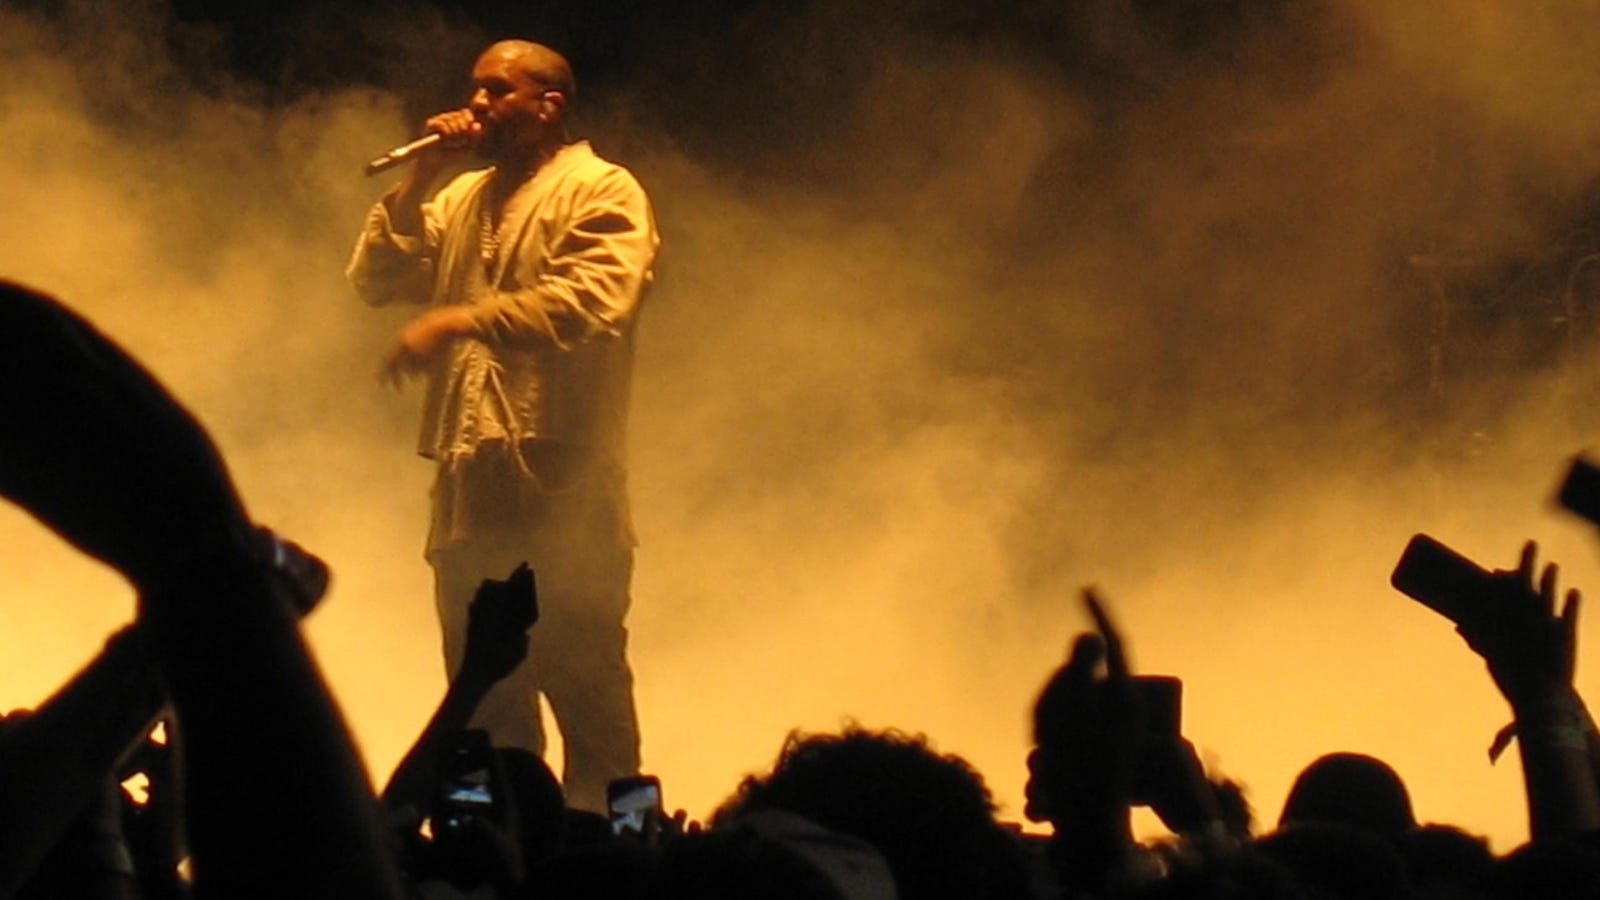 Want to see Kanye's Sunday Service this weekend at Coachella? Get in line at 6 a.m.